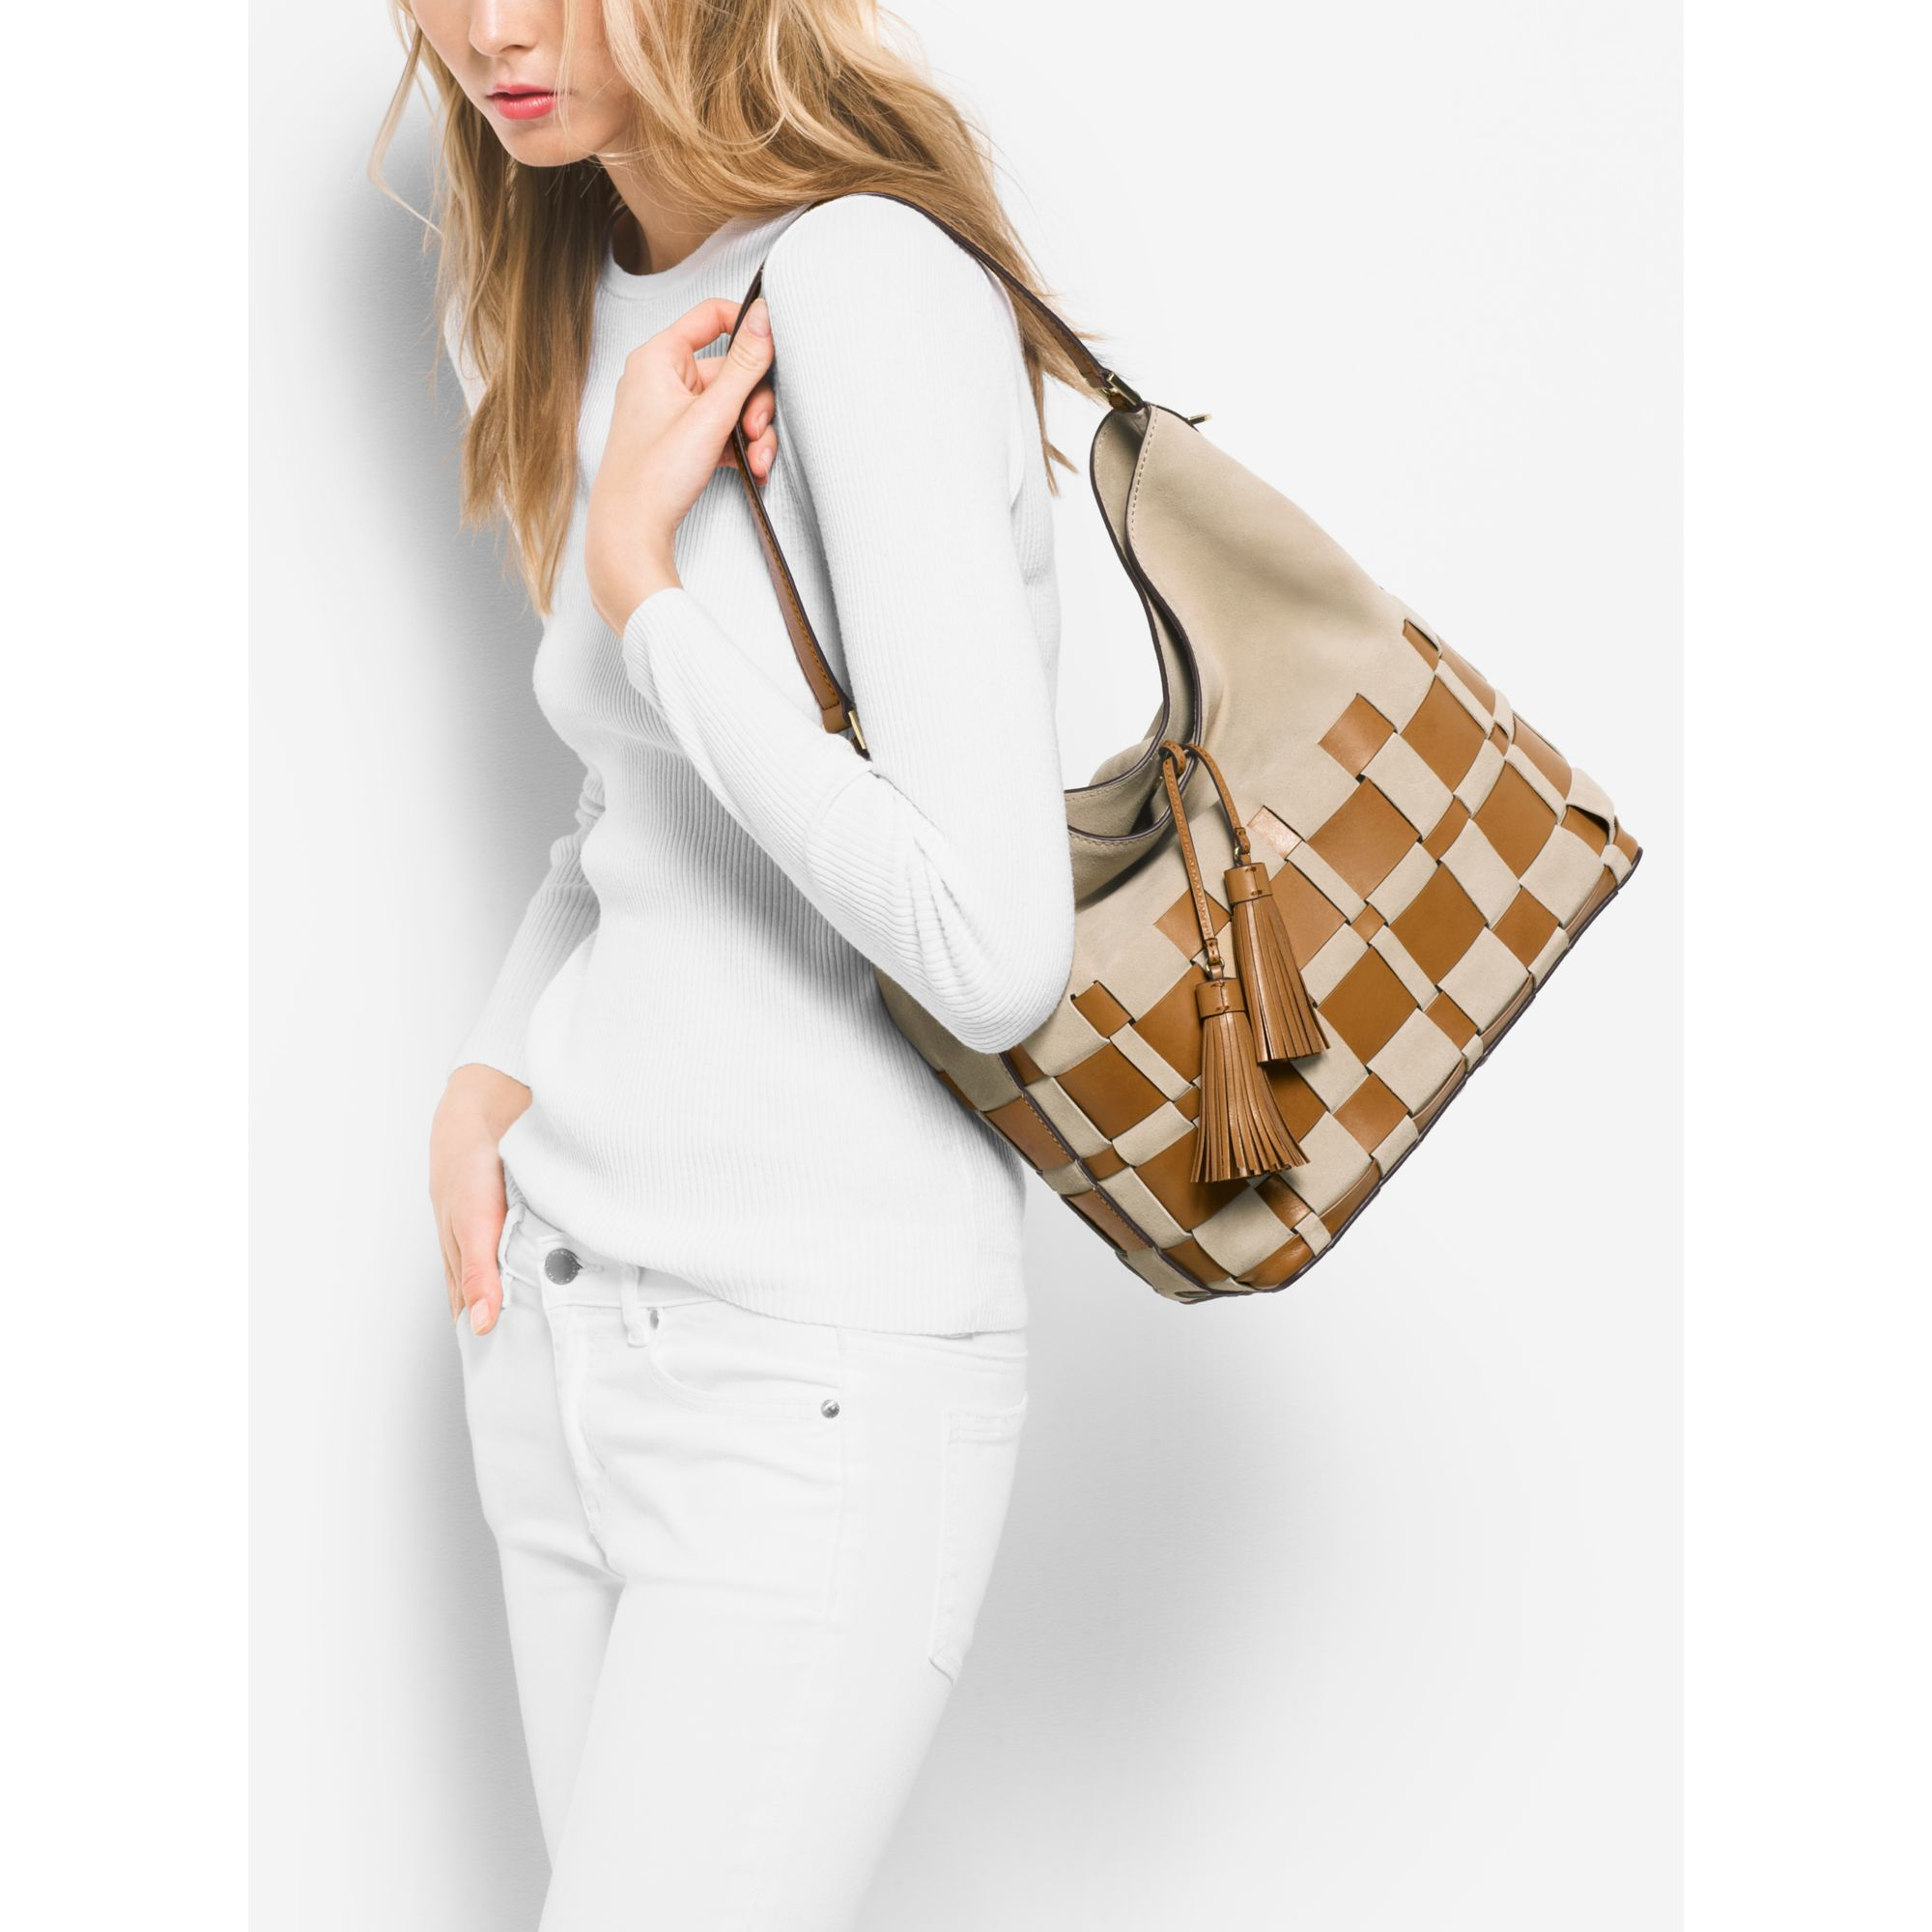 e8e56a456ef2 Michael Kors Vivian Large Woven Suede And Leather Hobo in Natural - Lyst